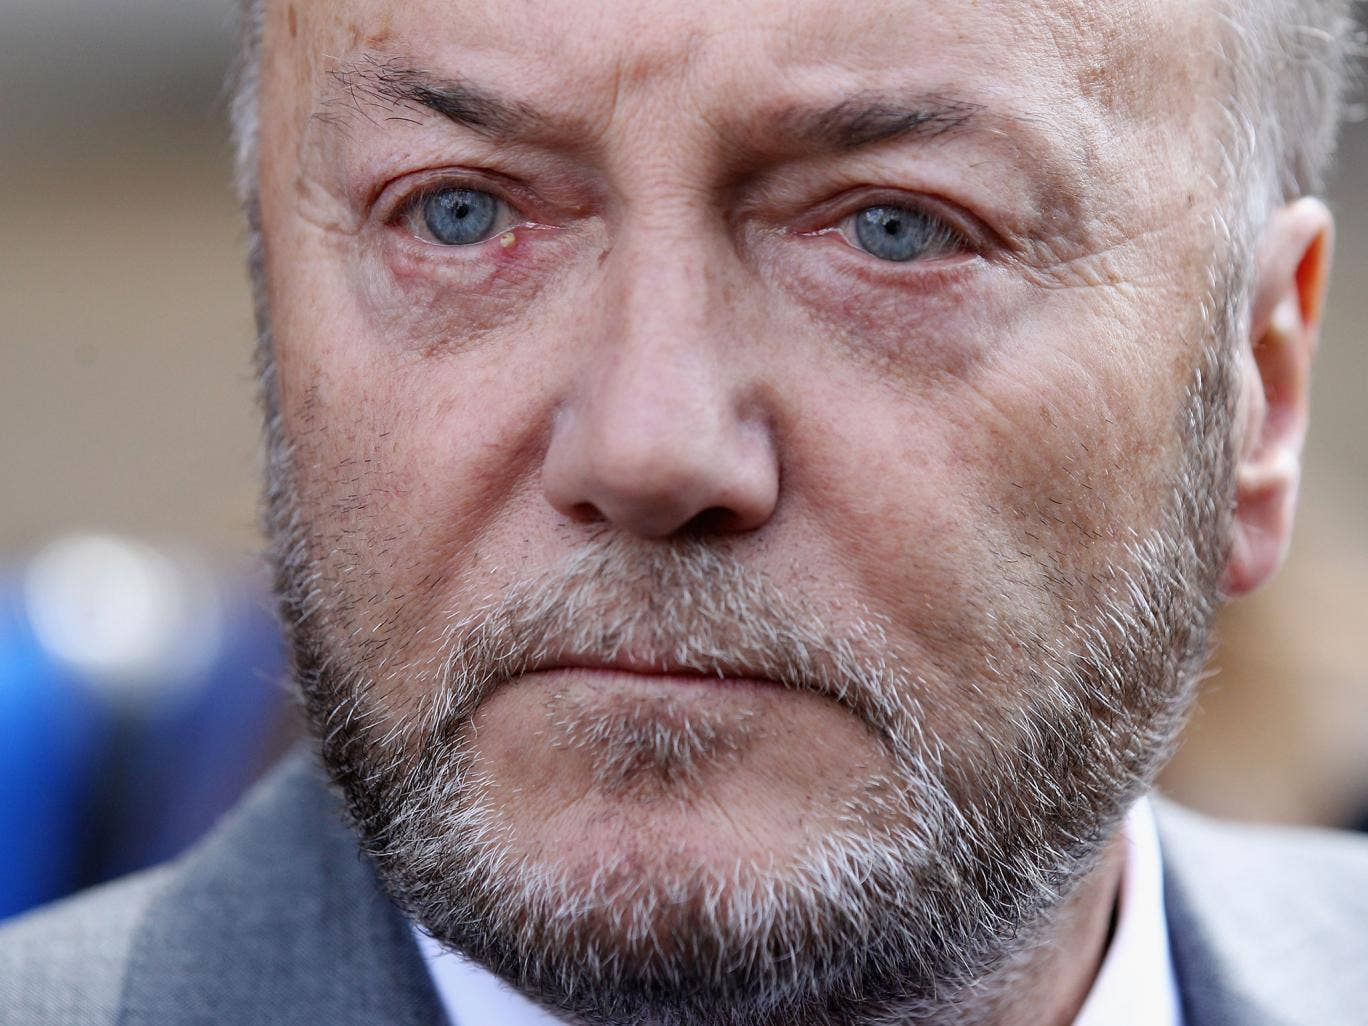 George Galloway's was attacked on Notting Hill street by man 'shouting about the holocaust'